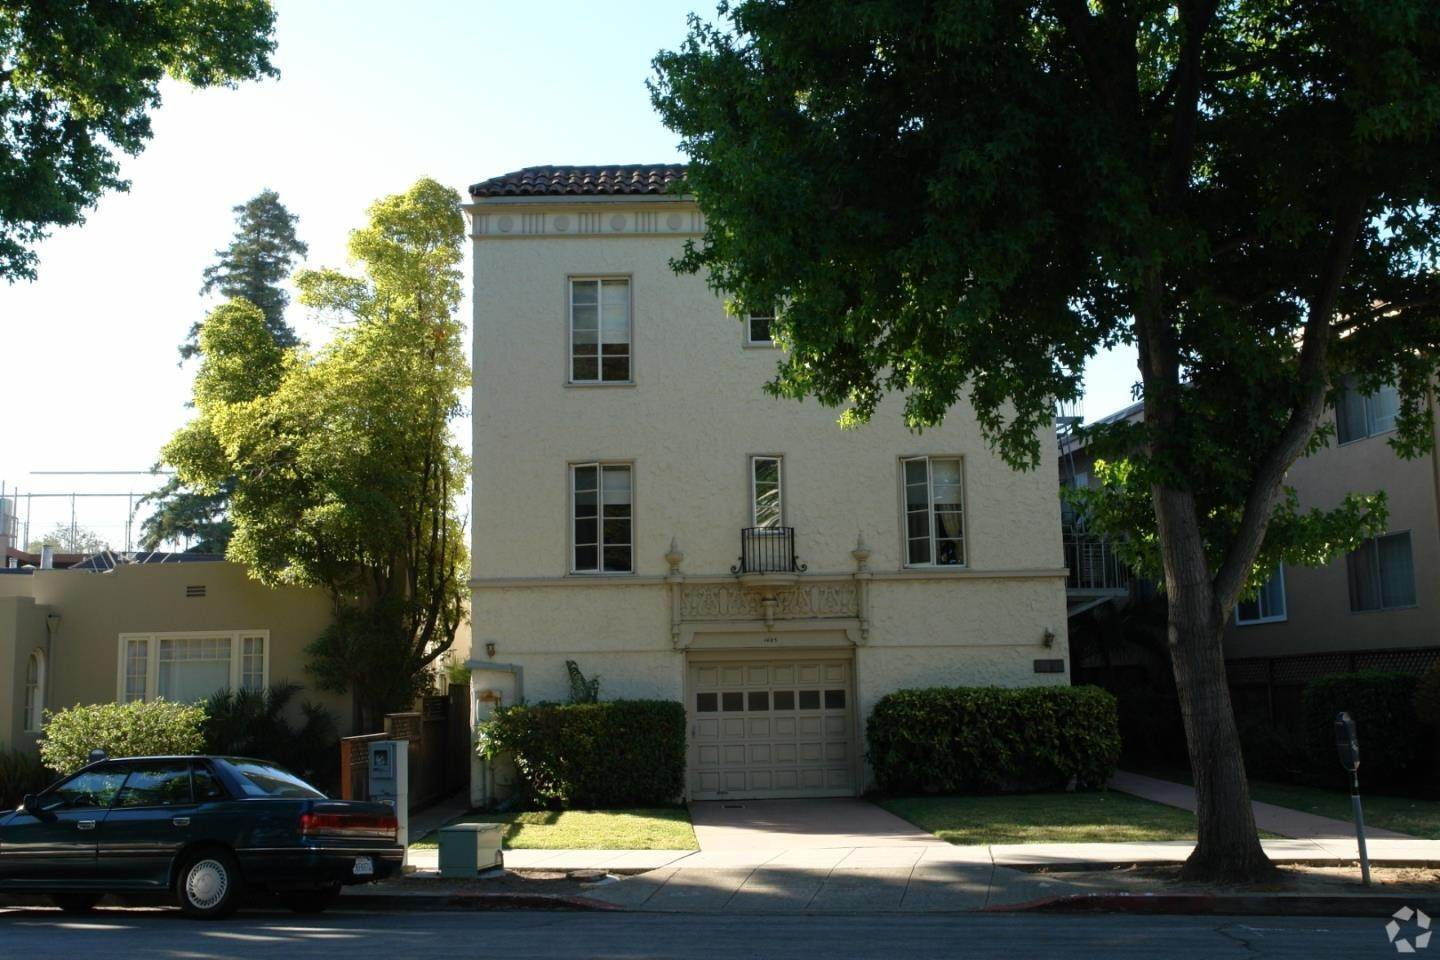 Multi-Family Homes for Sale at 1405 Bellevue Avenue Burlingame, California 94010 United States